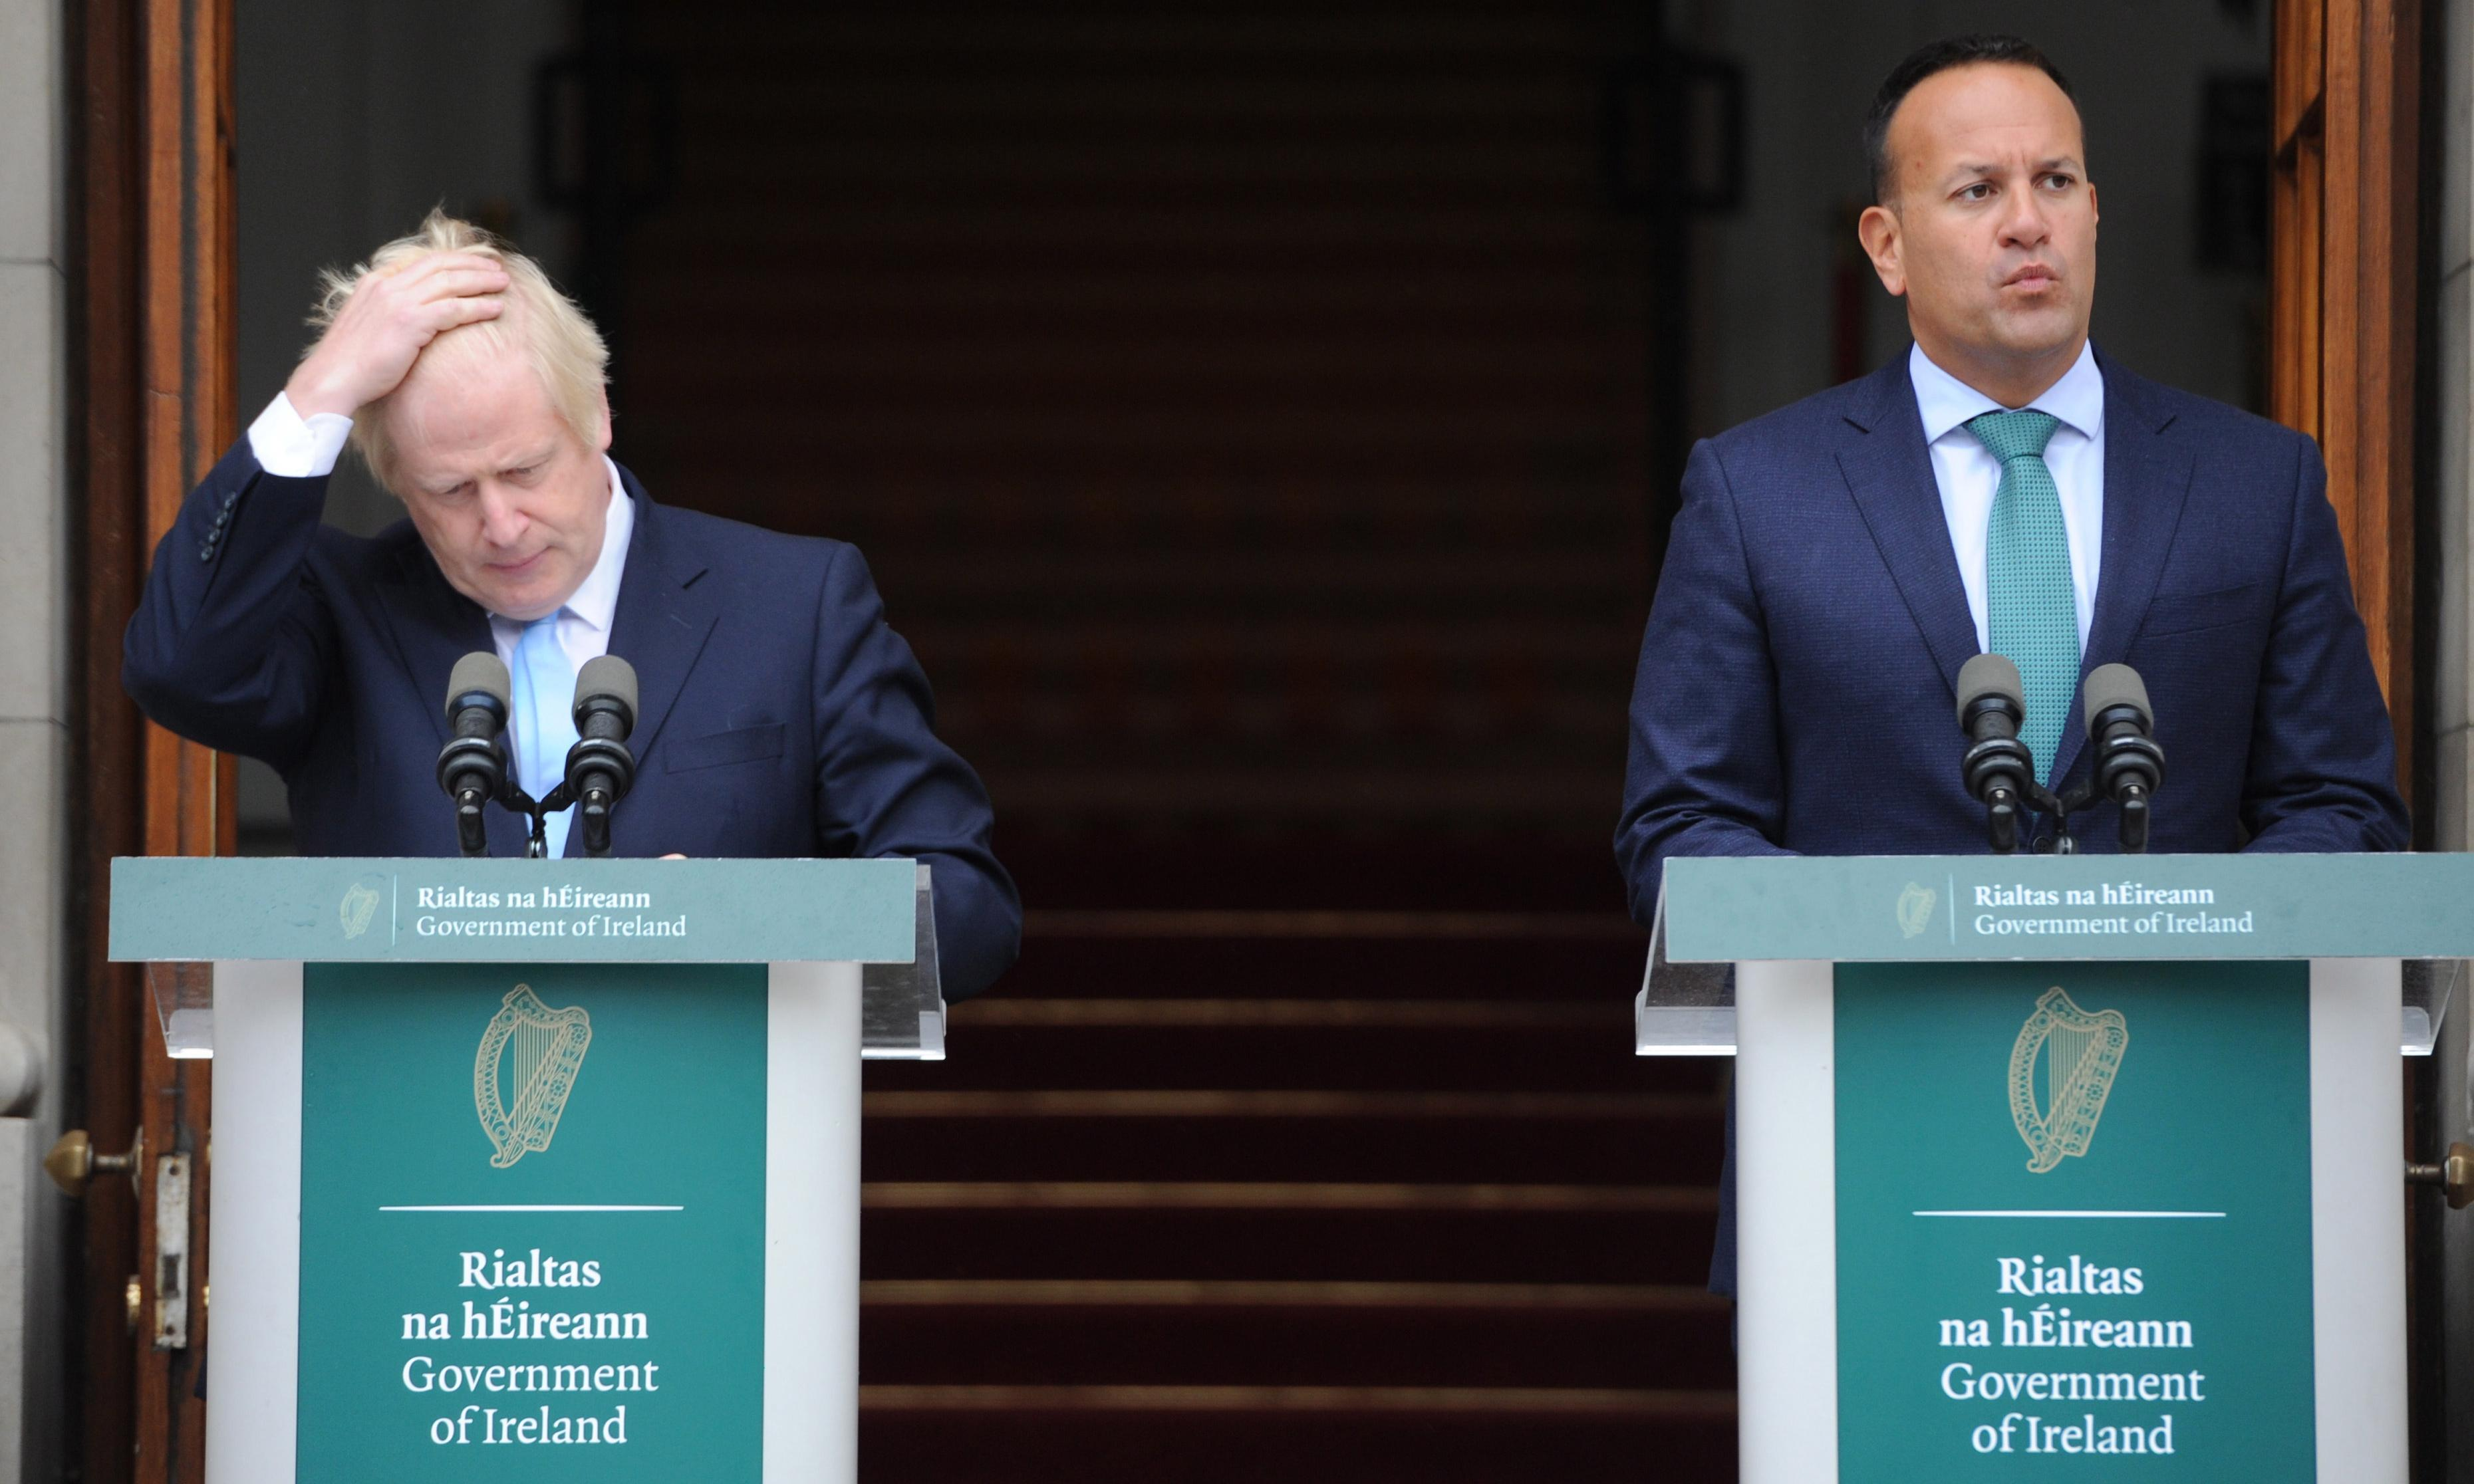 The Guardian view on Boris Johnson's Brexit breach: rift with EU could be here to stay